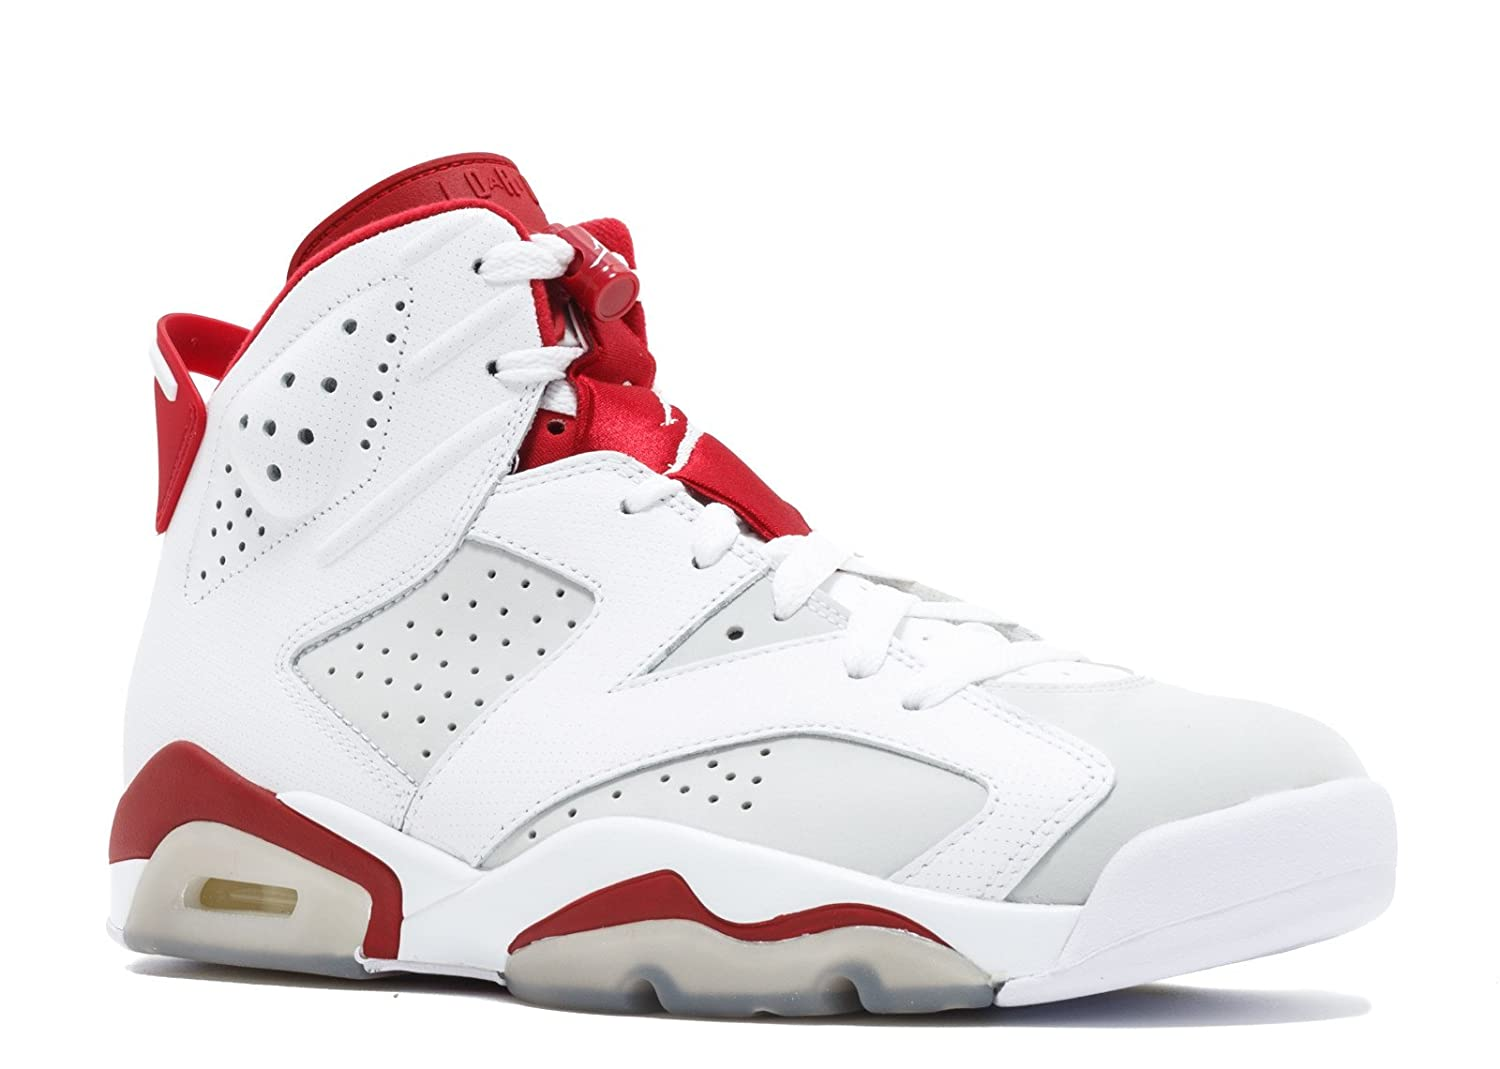 AIR JORDAN - エアジョーダン - AIR JORDAN 6 RETRO 'ALTERNATE' - 384664-113 - SIZE 16 (メンズ)